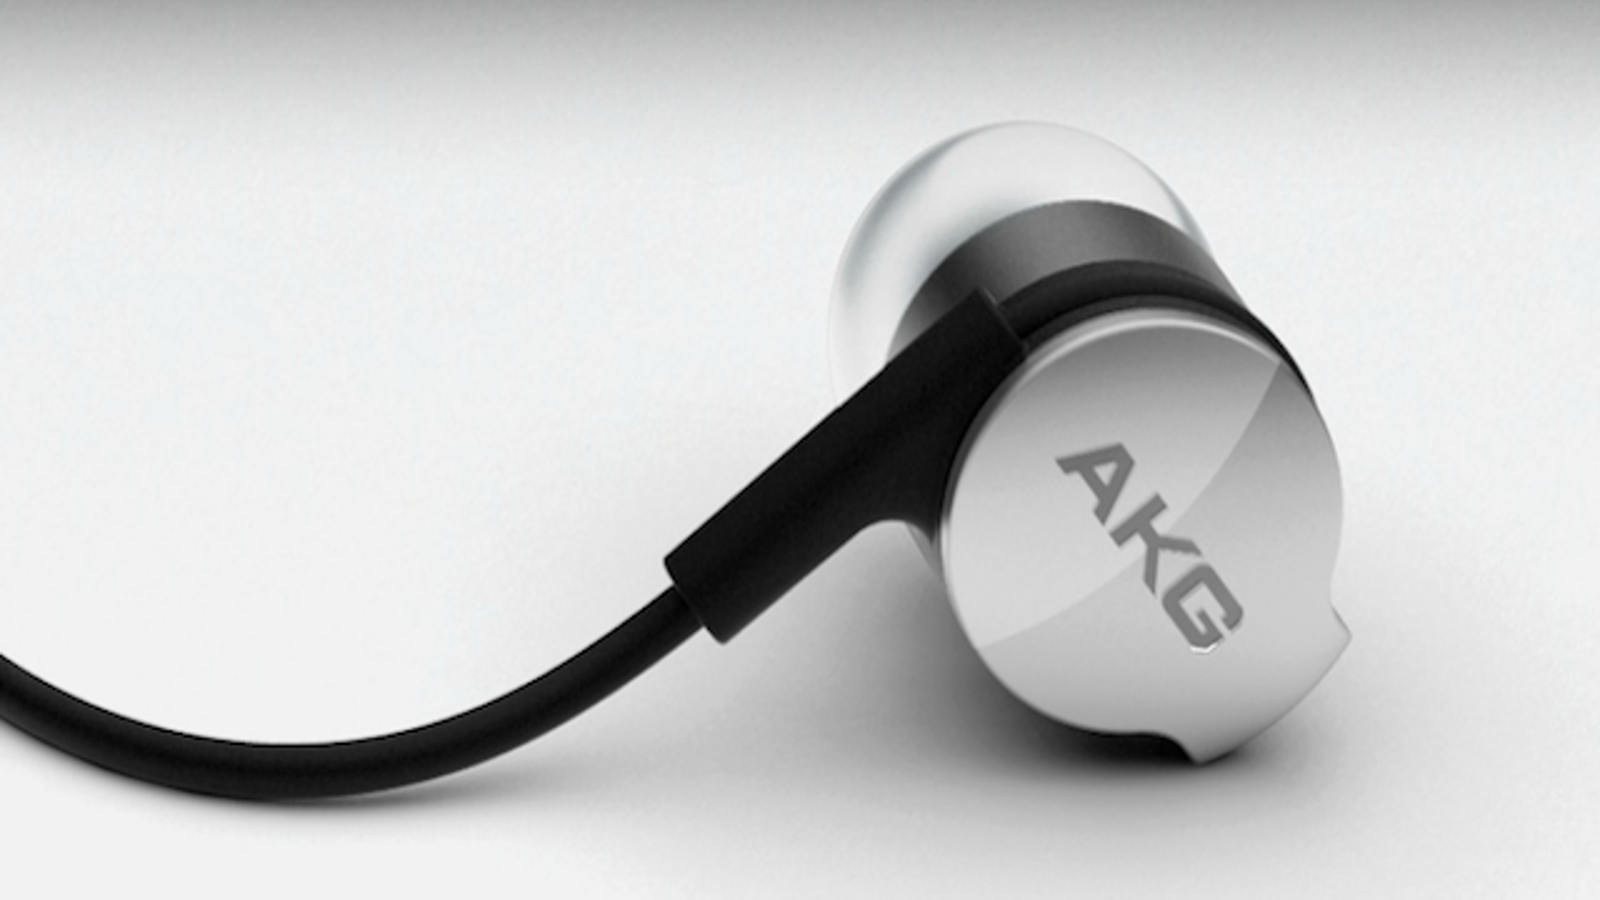 headphone splitter amplifier - The AKG K3003s Are Easy on the Eyes, but Nary a Soul Will Buy